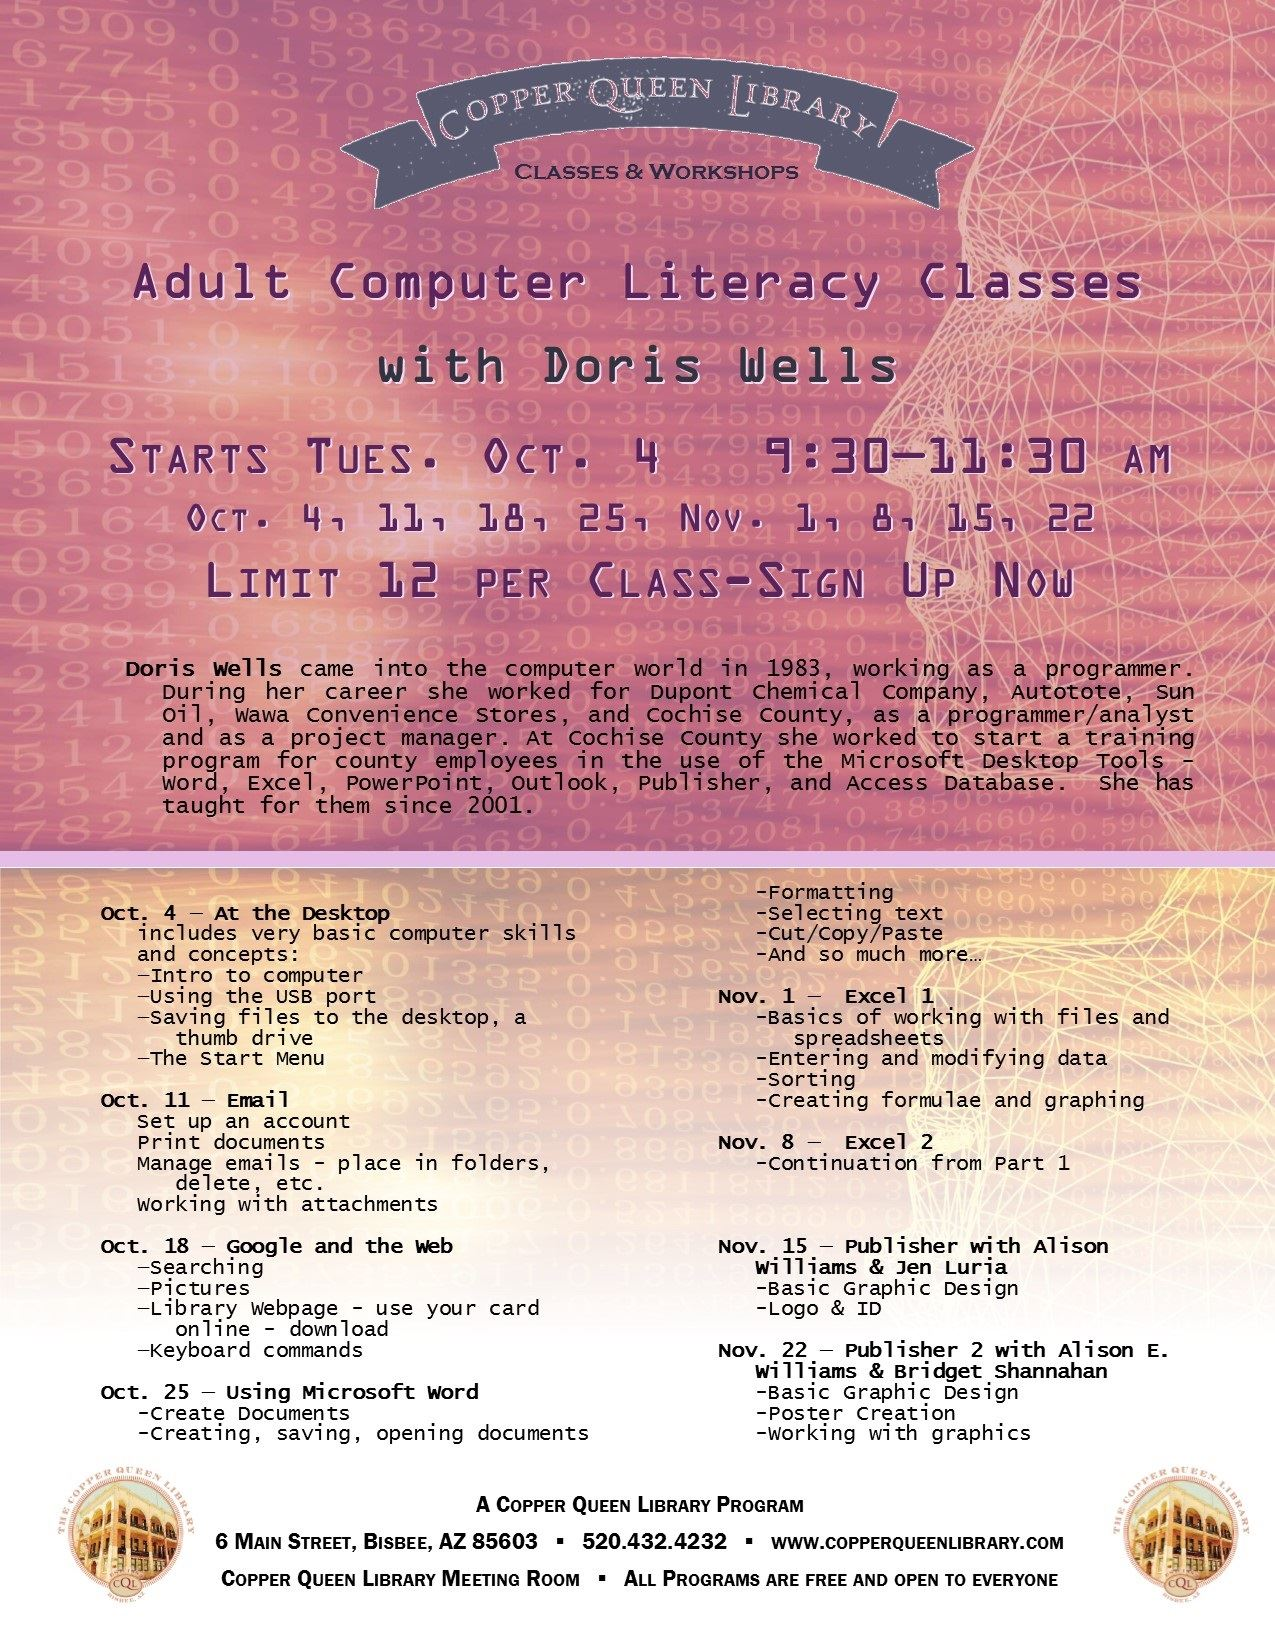 COMPUTERY LITERACY-DORIS WELLS  POSTER 8.5 X 11